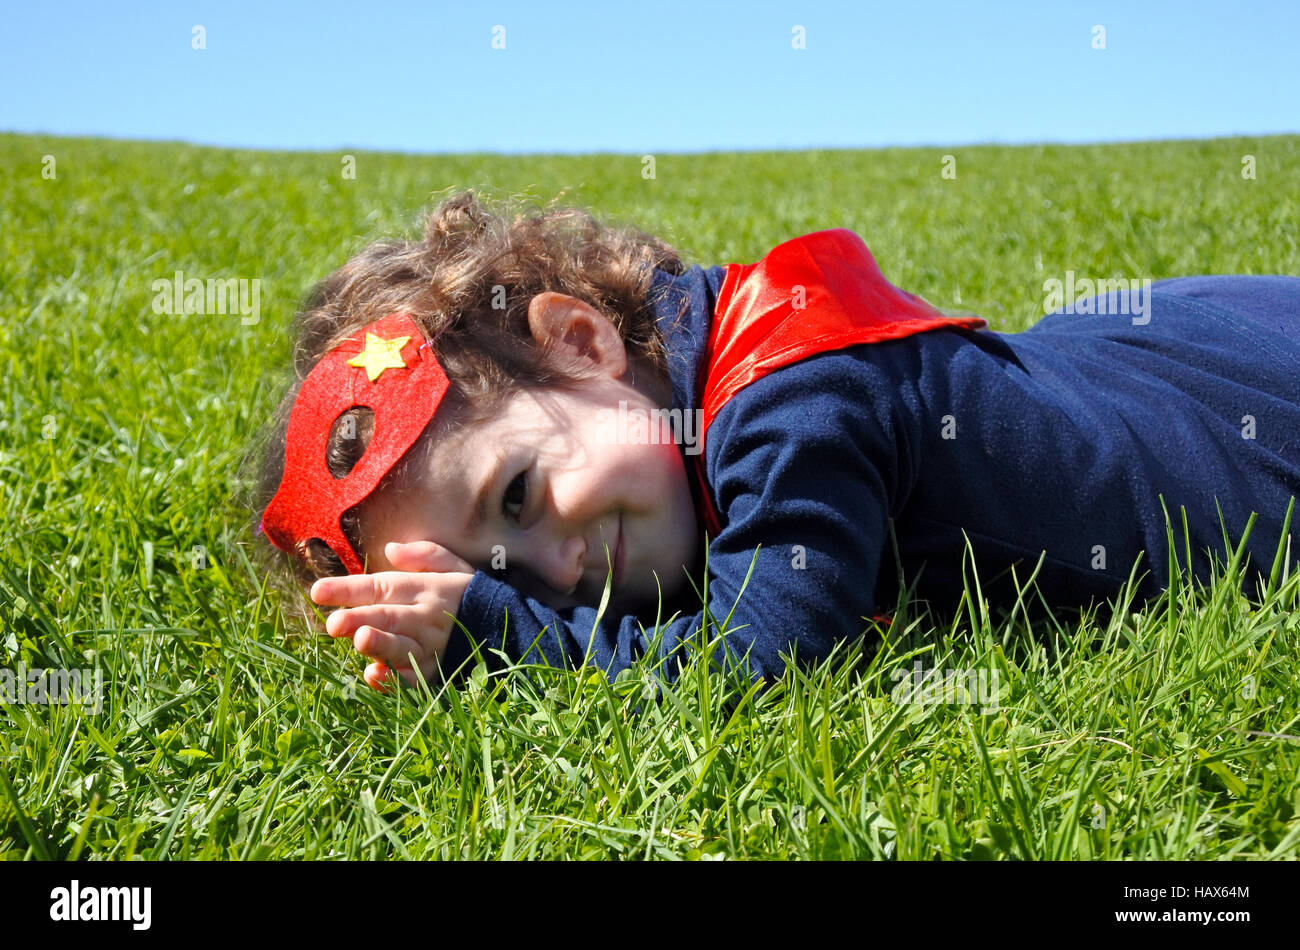 Happy Superhero toddler lay on green grass. concept photo of Super hero, girl power, play pretend, childhood, imagination. - Stock Image